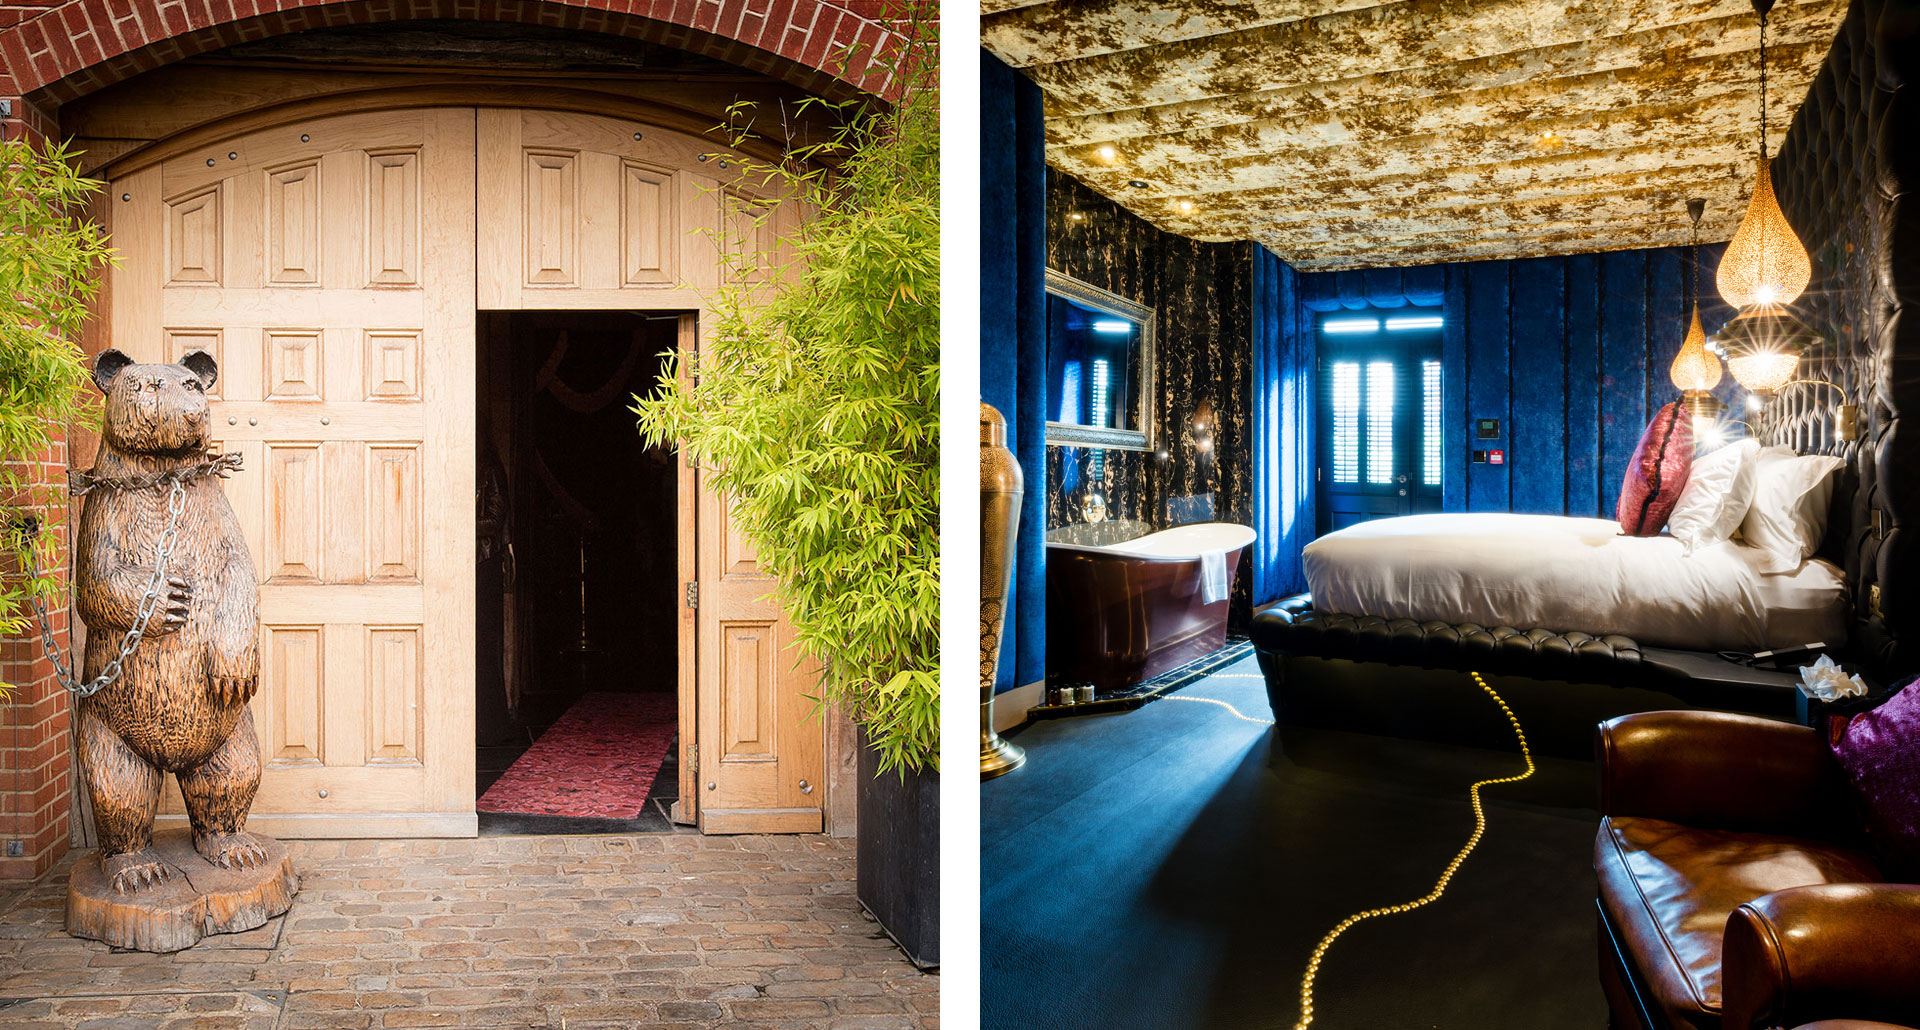 The Crazy Bear - boutique hotel in Beaconsfield